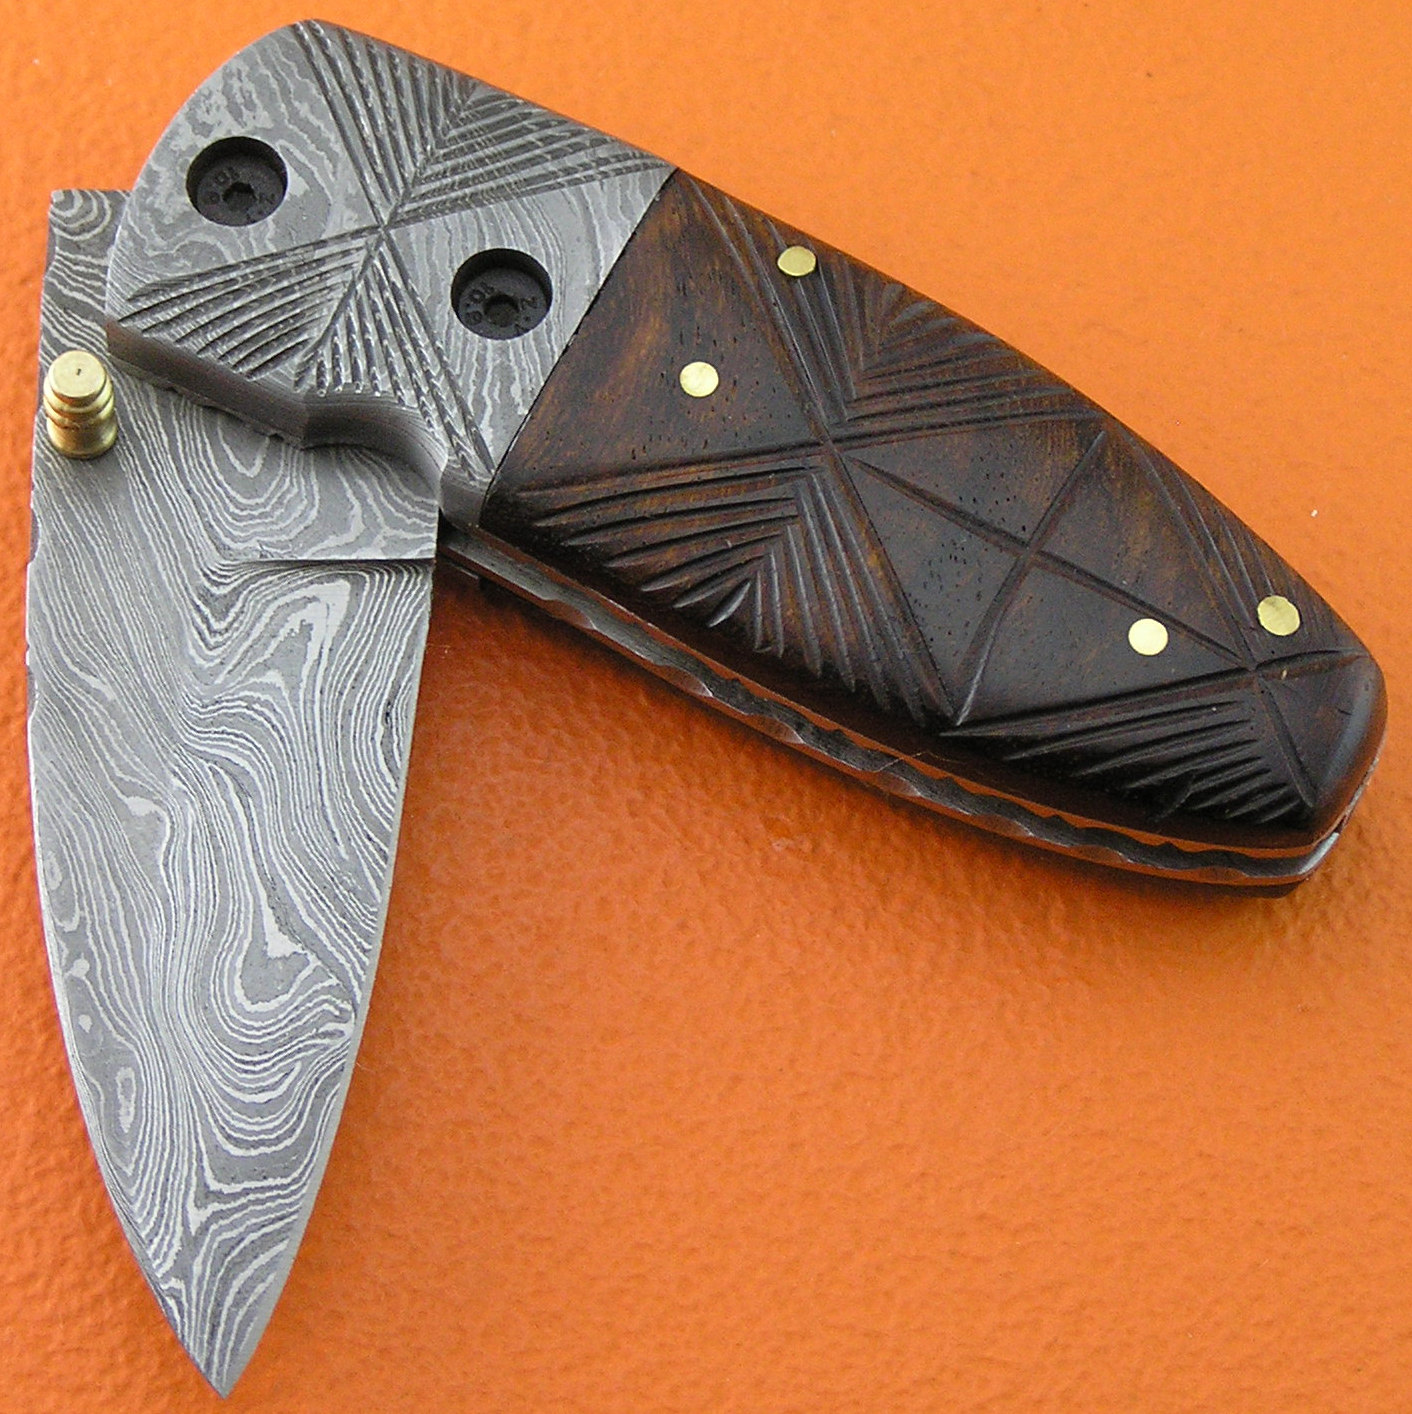 how to close a liner lock knife